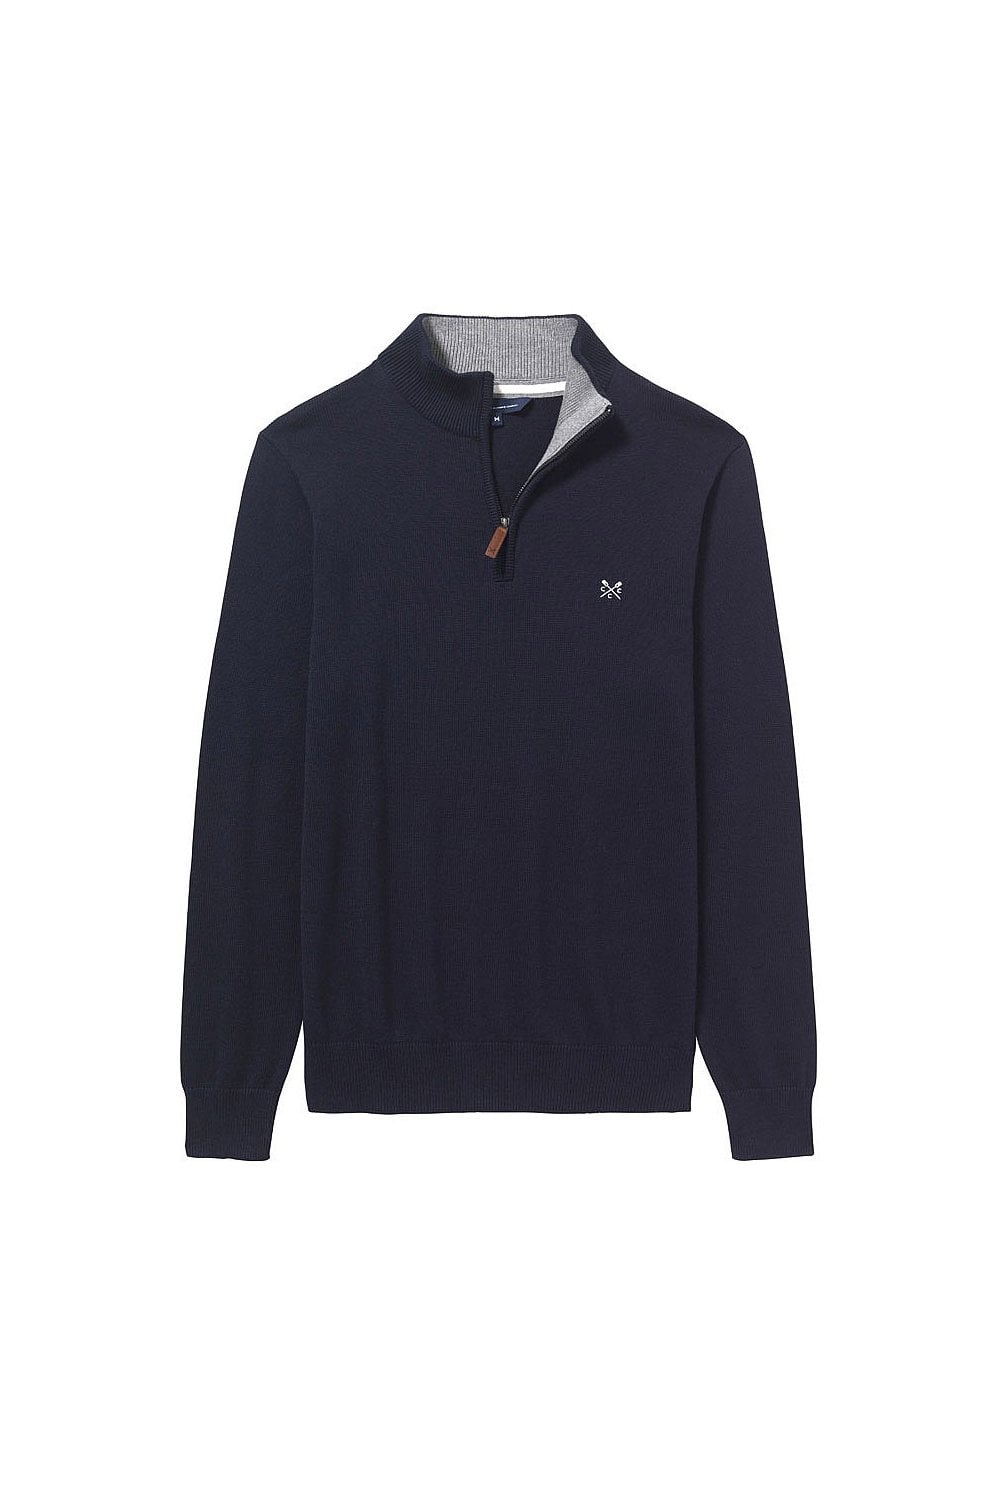 adccd1664e8a Crew Clothing Mens Classic Half Zip Jumper - Navy - Menswear from ...